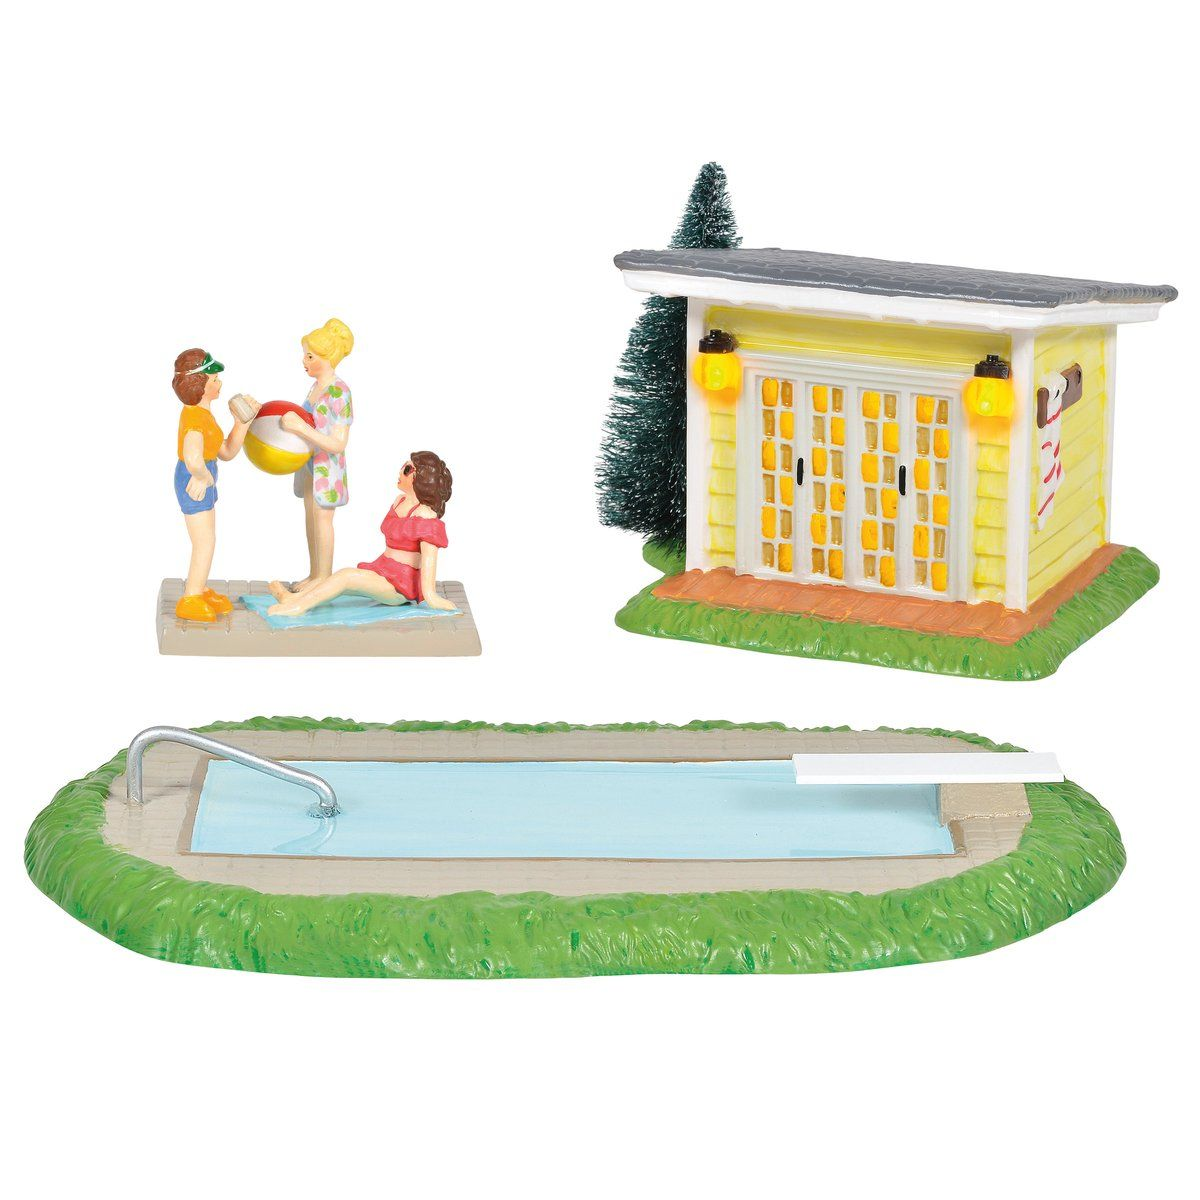 Department 56 National Lampoon S Christmas Vacation Pool Fantasy Availa National Lampoons Christmas Vacation Christmas Vacation Lampoon S Christmas Vacation